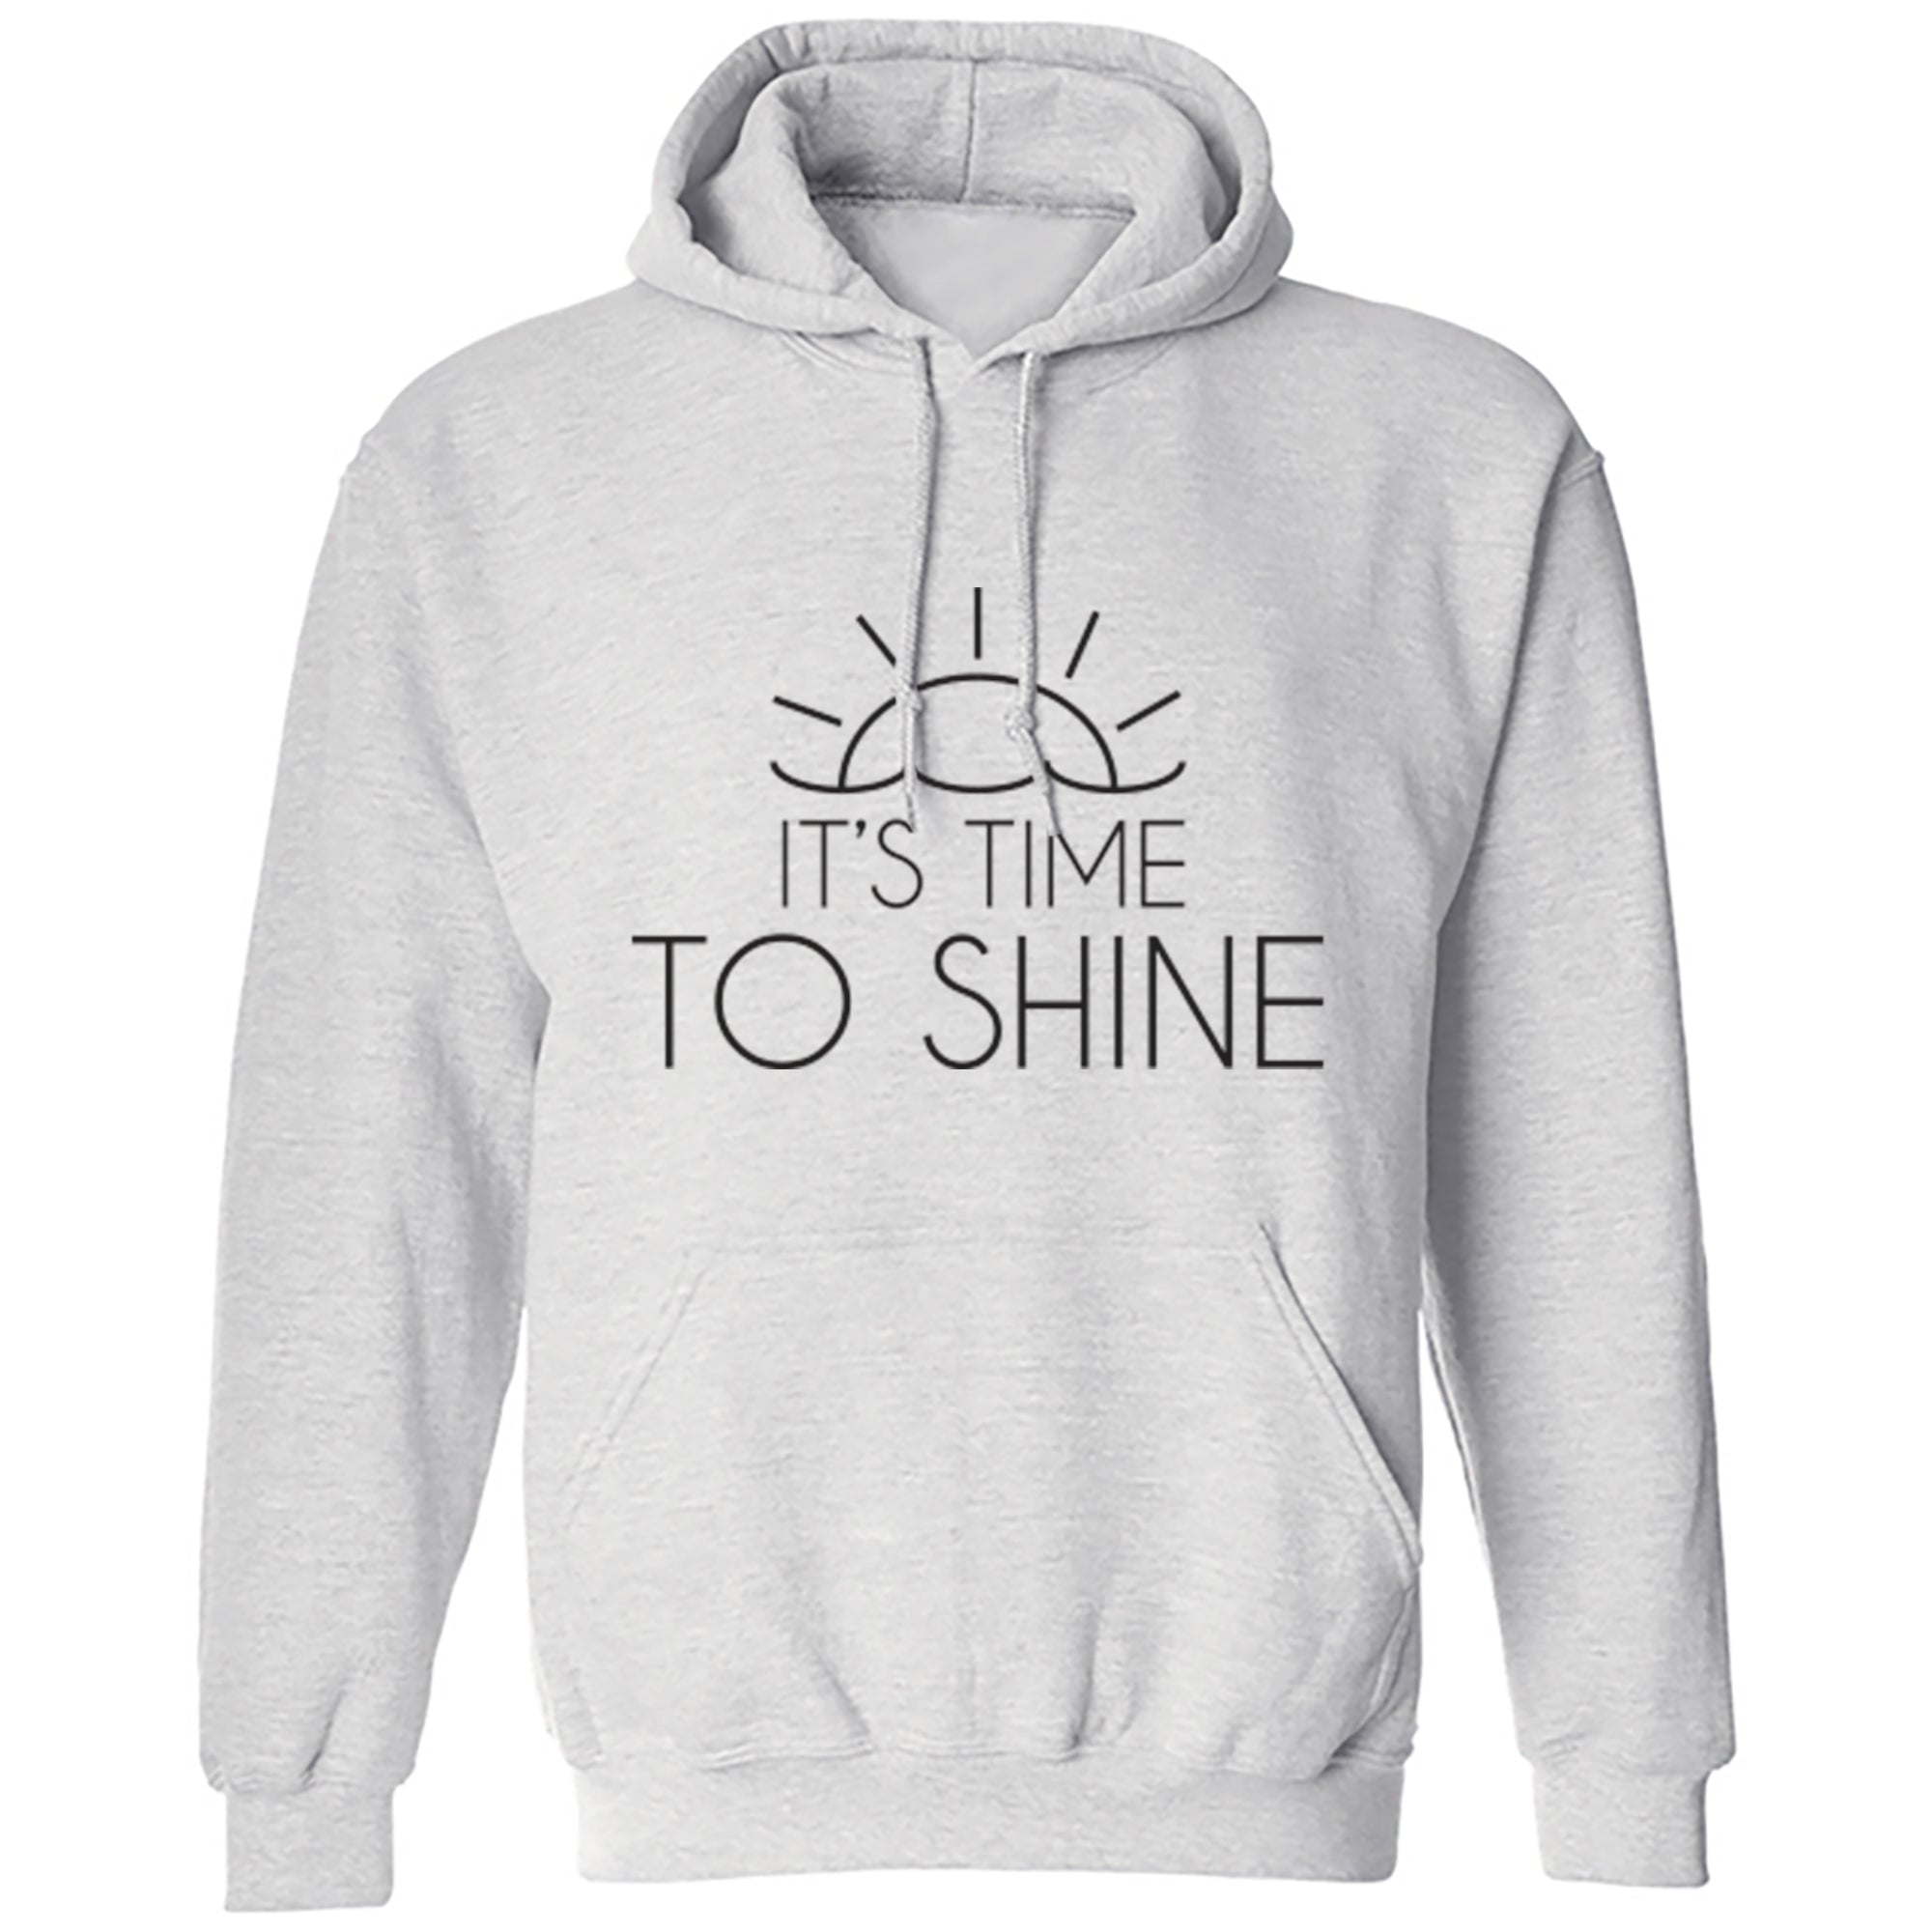 It's Time To Shine Unisex Hoodie S0422 - Illustrated Identity Ltd.